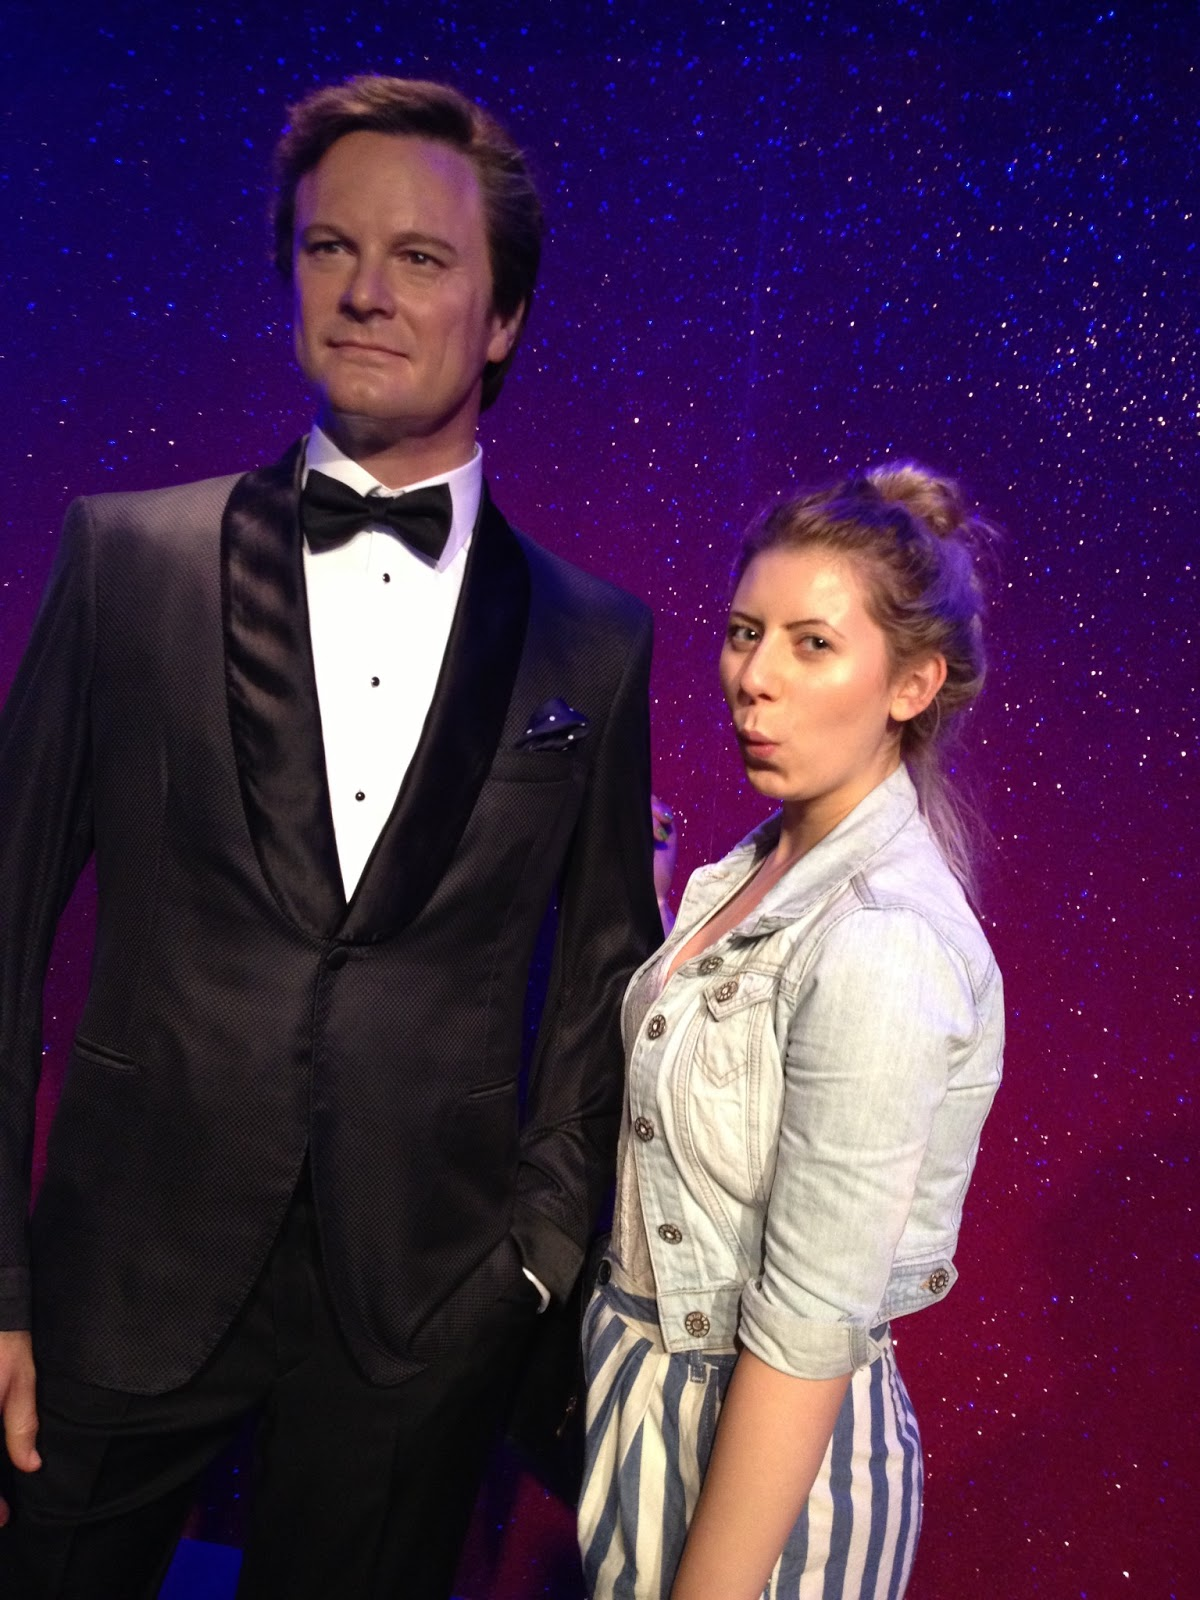 A DAY OUT AT TUSSAUDS + THE DINER